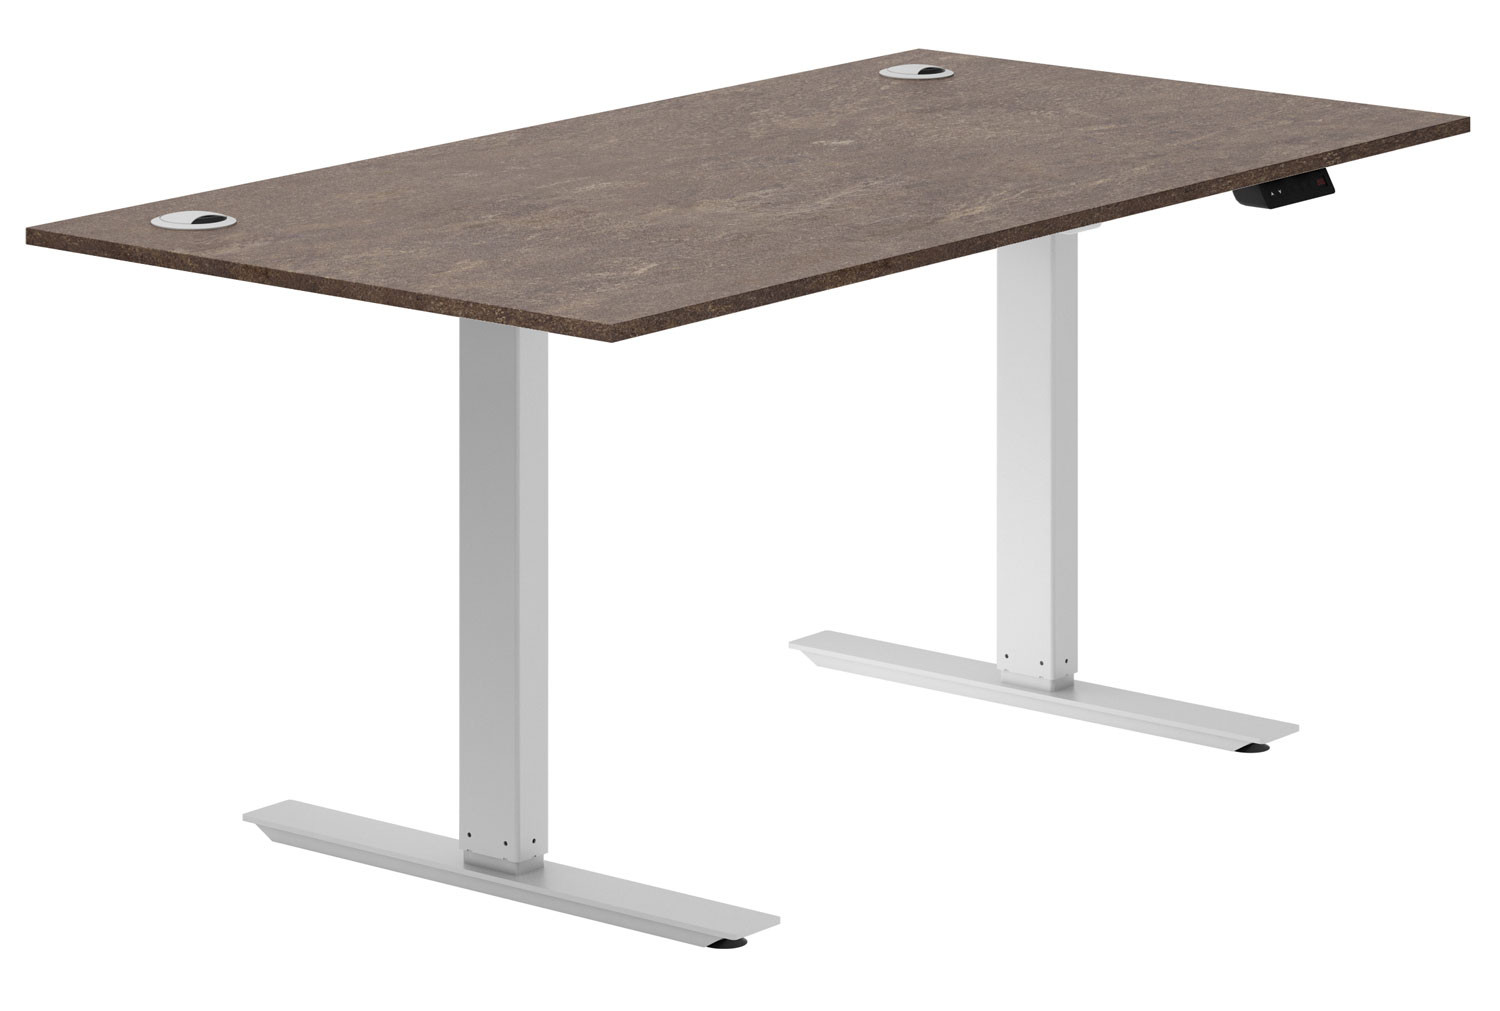 Respond Sit & Stand Desk (Pitted Steel)